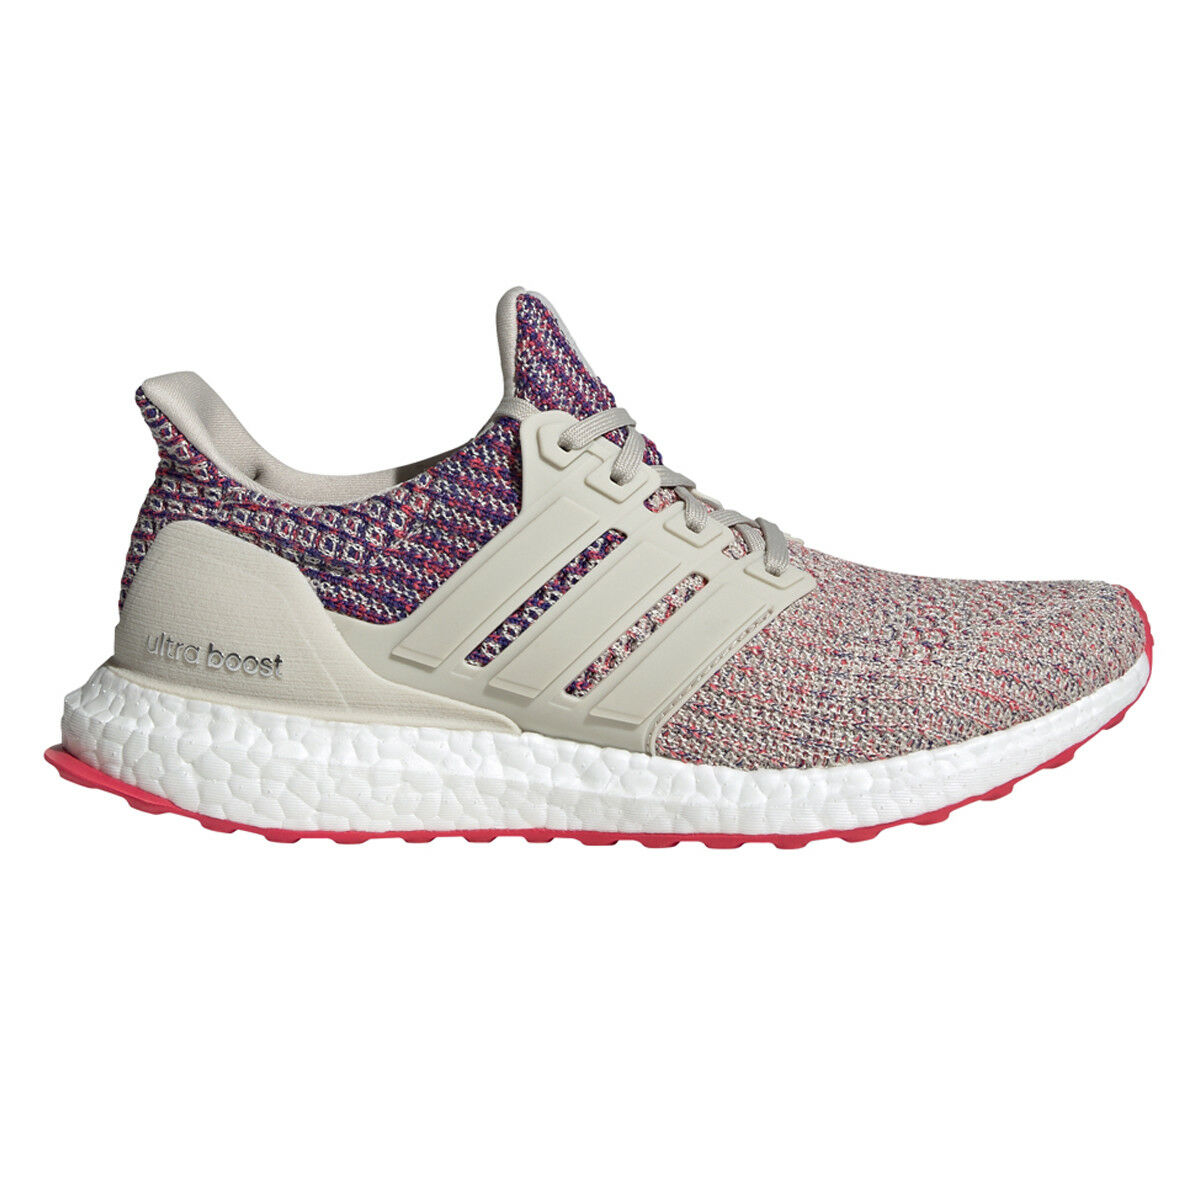 Adidas UltraBoost Women's Running shoes F36122 - Multi colord (NEW) Lists@